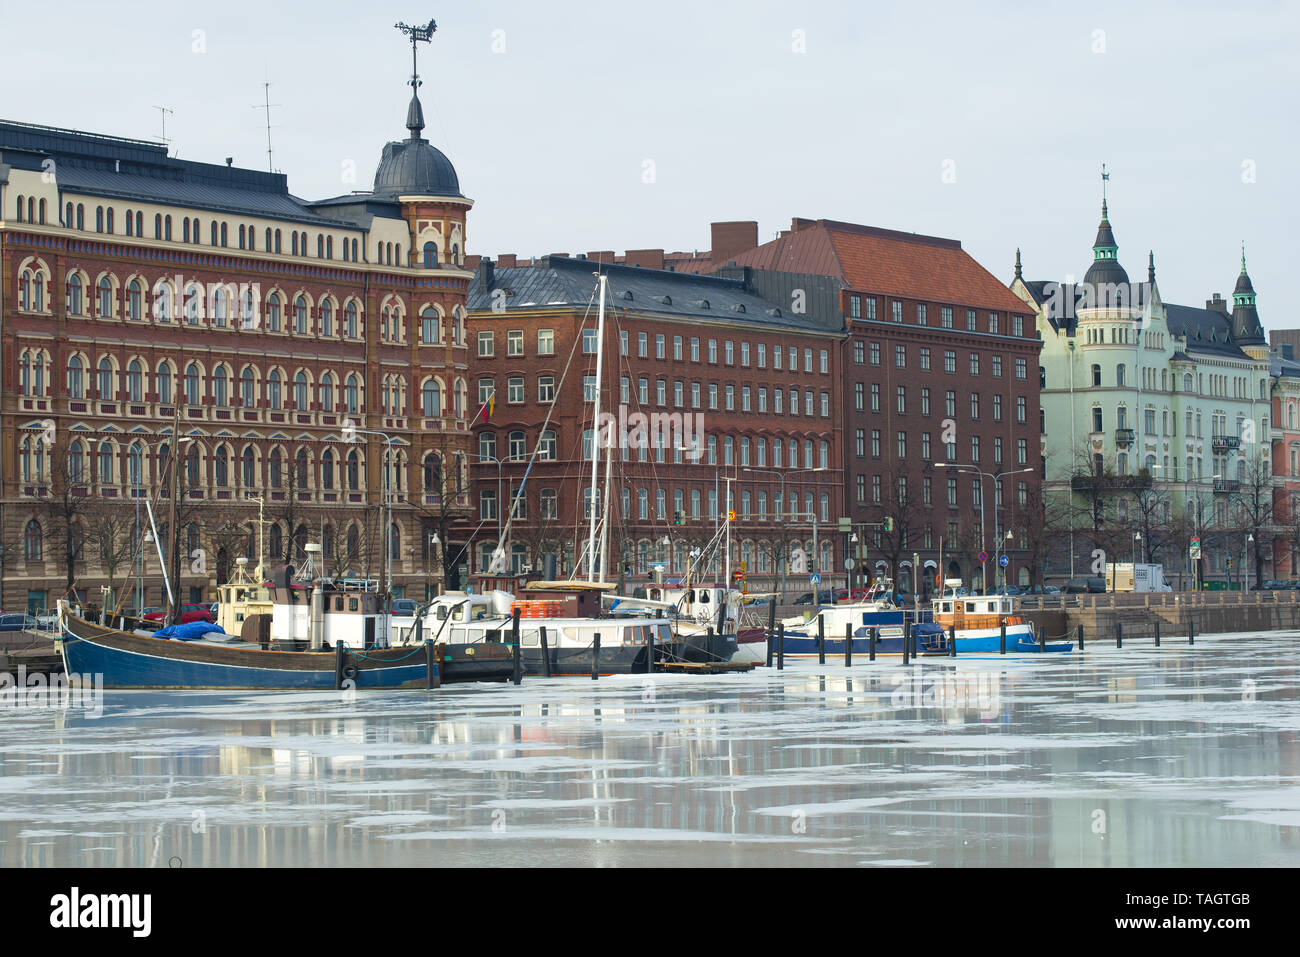 HELSINKI, FINLAND - MARCH 08, 2019: A cloudy March day on the Northern Embankment - Stock Image